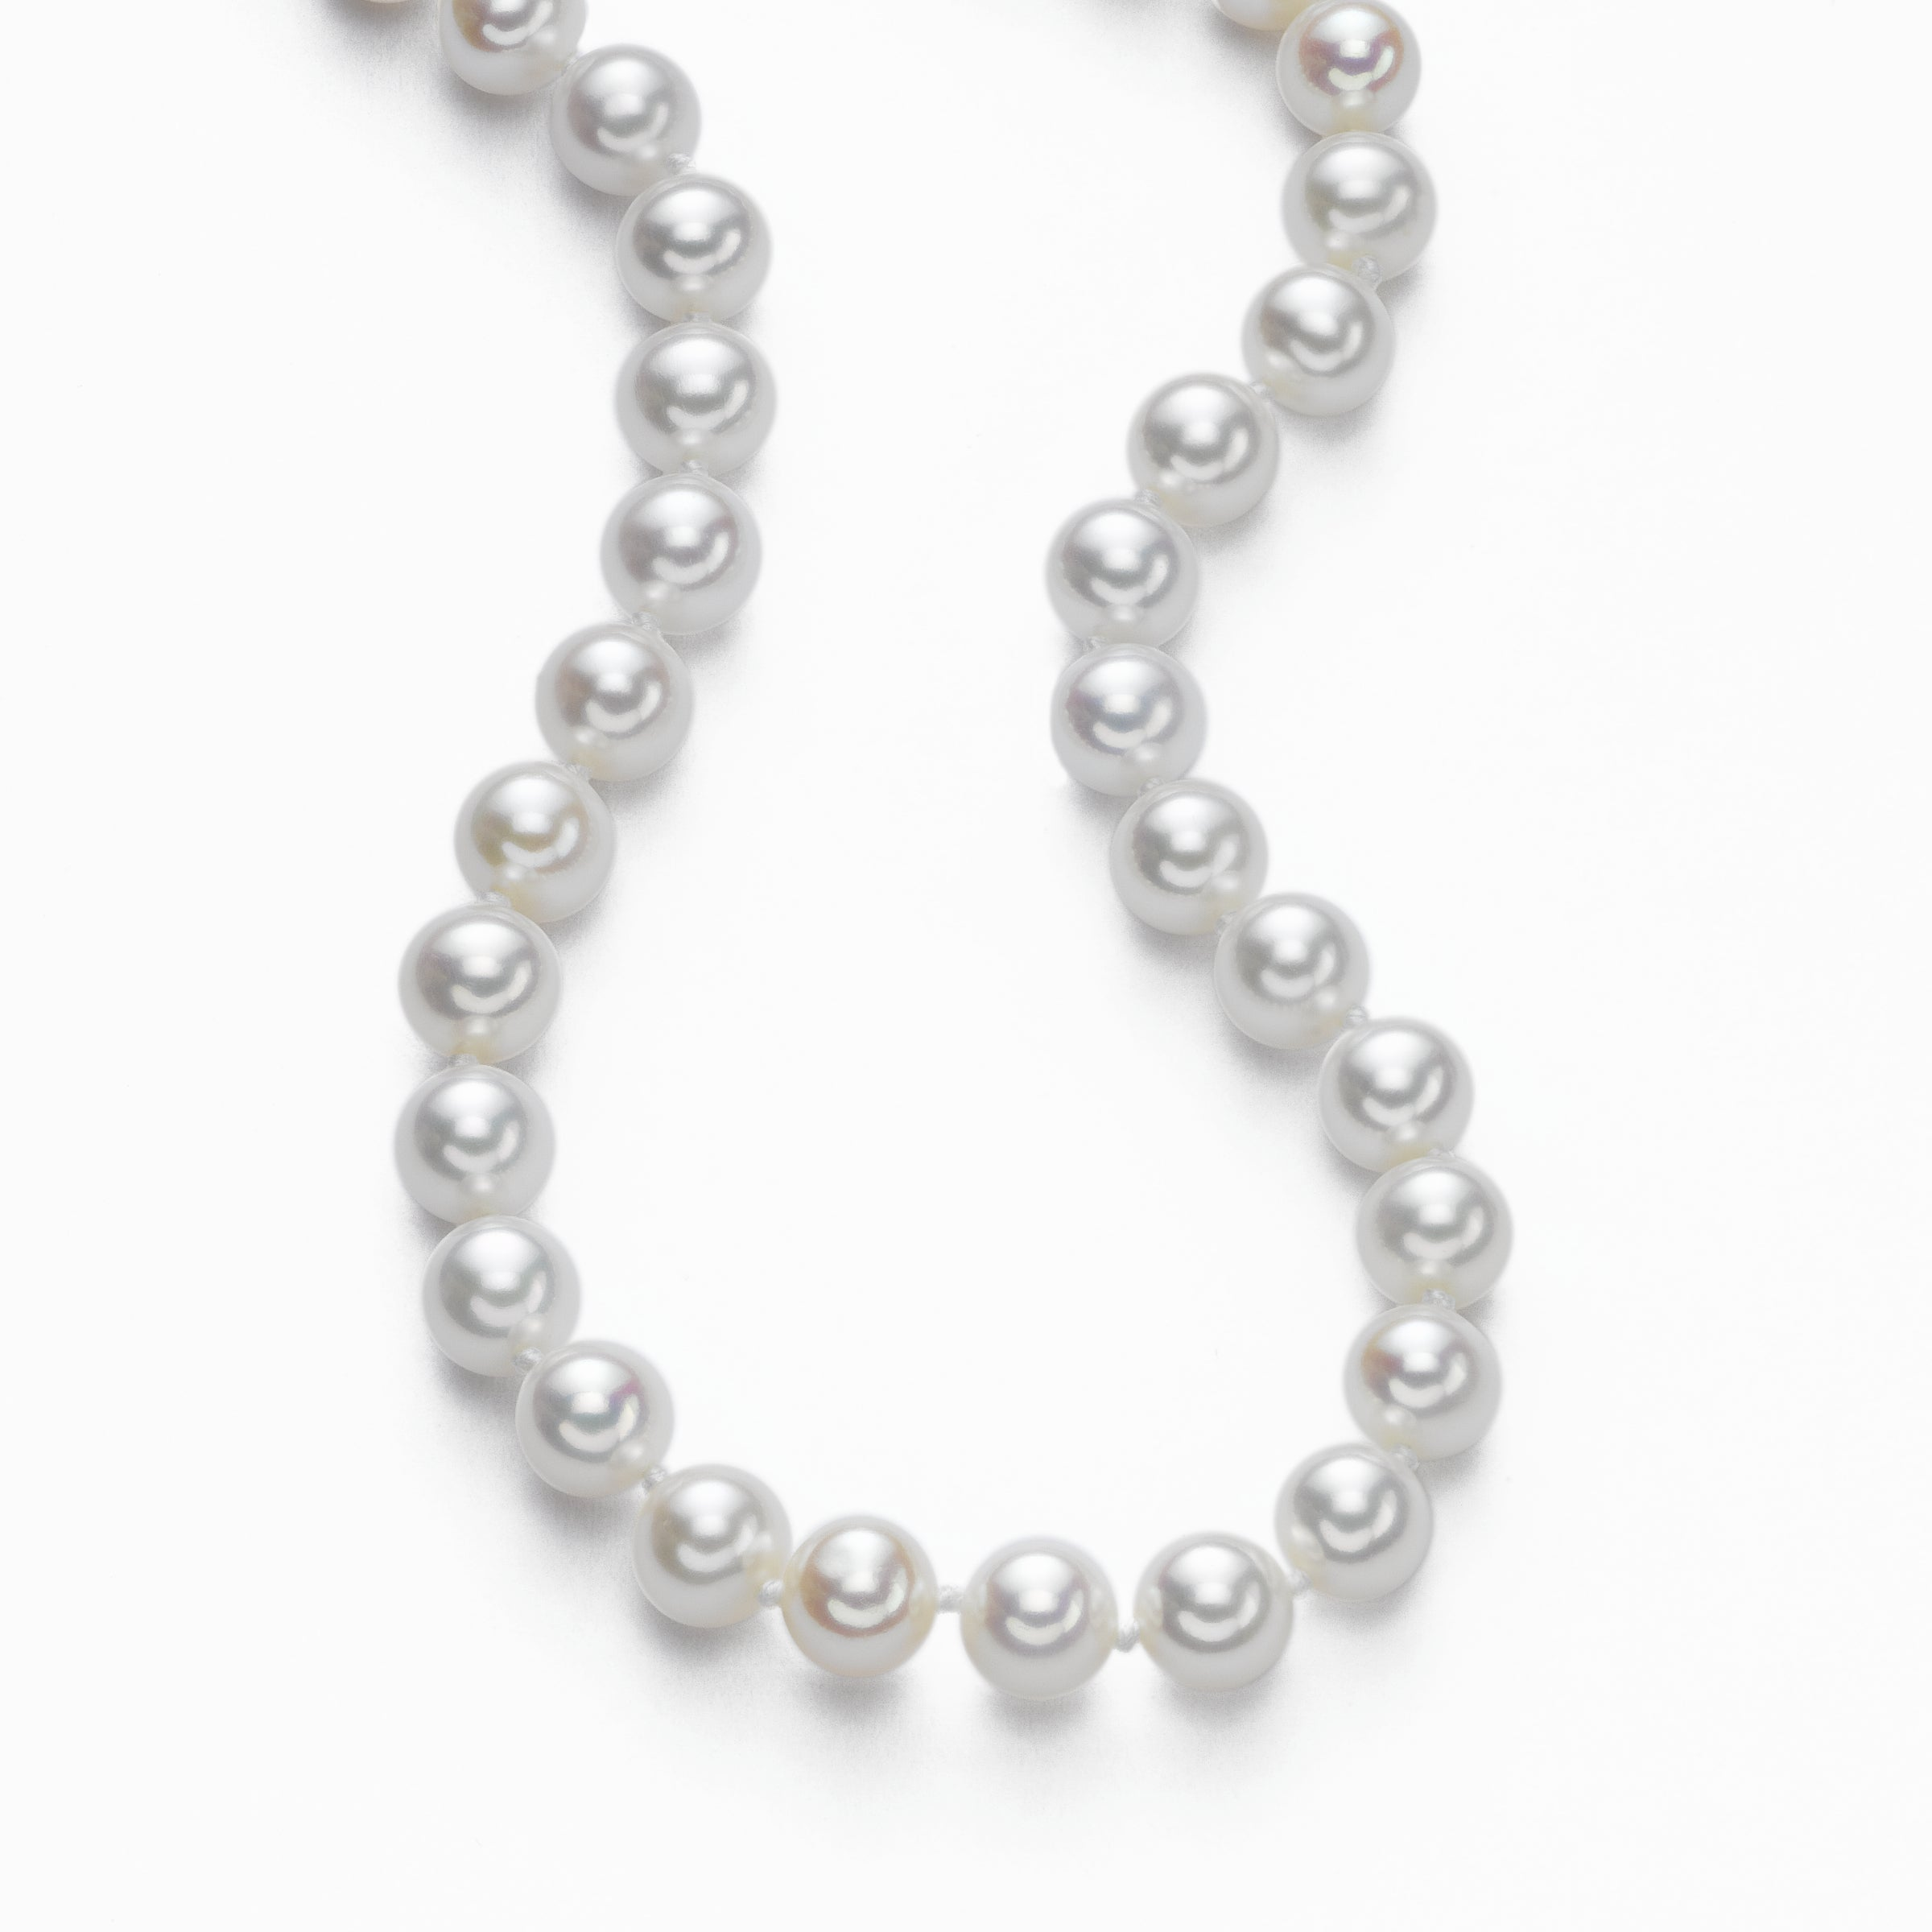 c7a75ea8add82 Japanese Saltwater Cultured Pearls, 7 x 6.5 mm, 14K White Gold